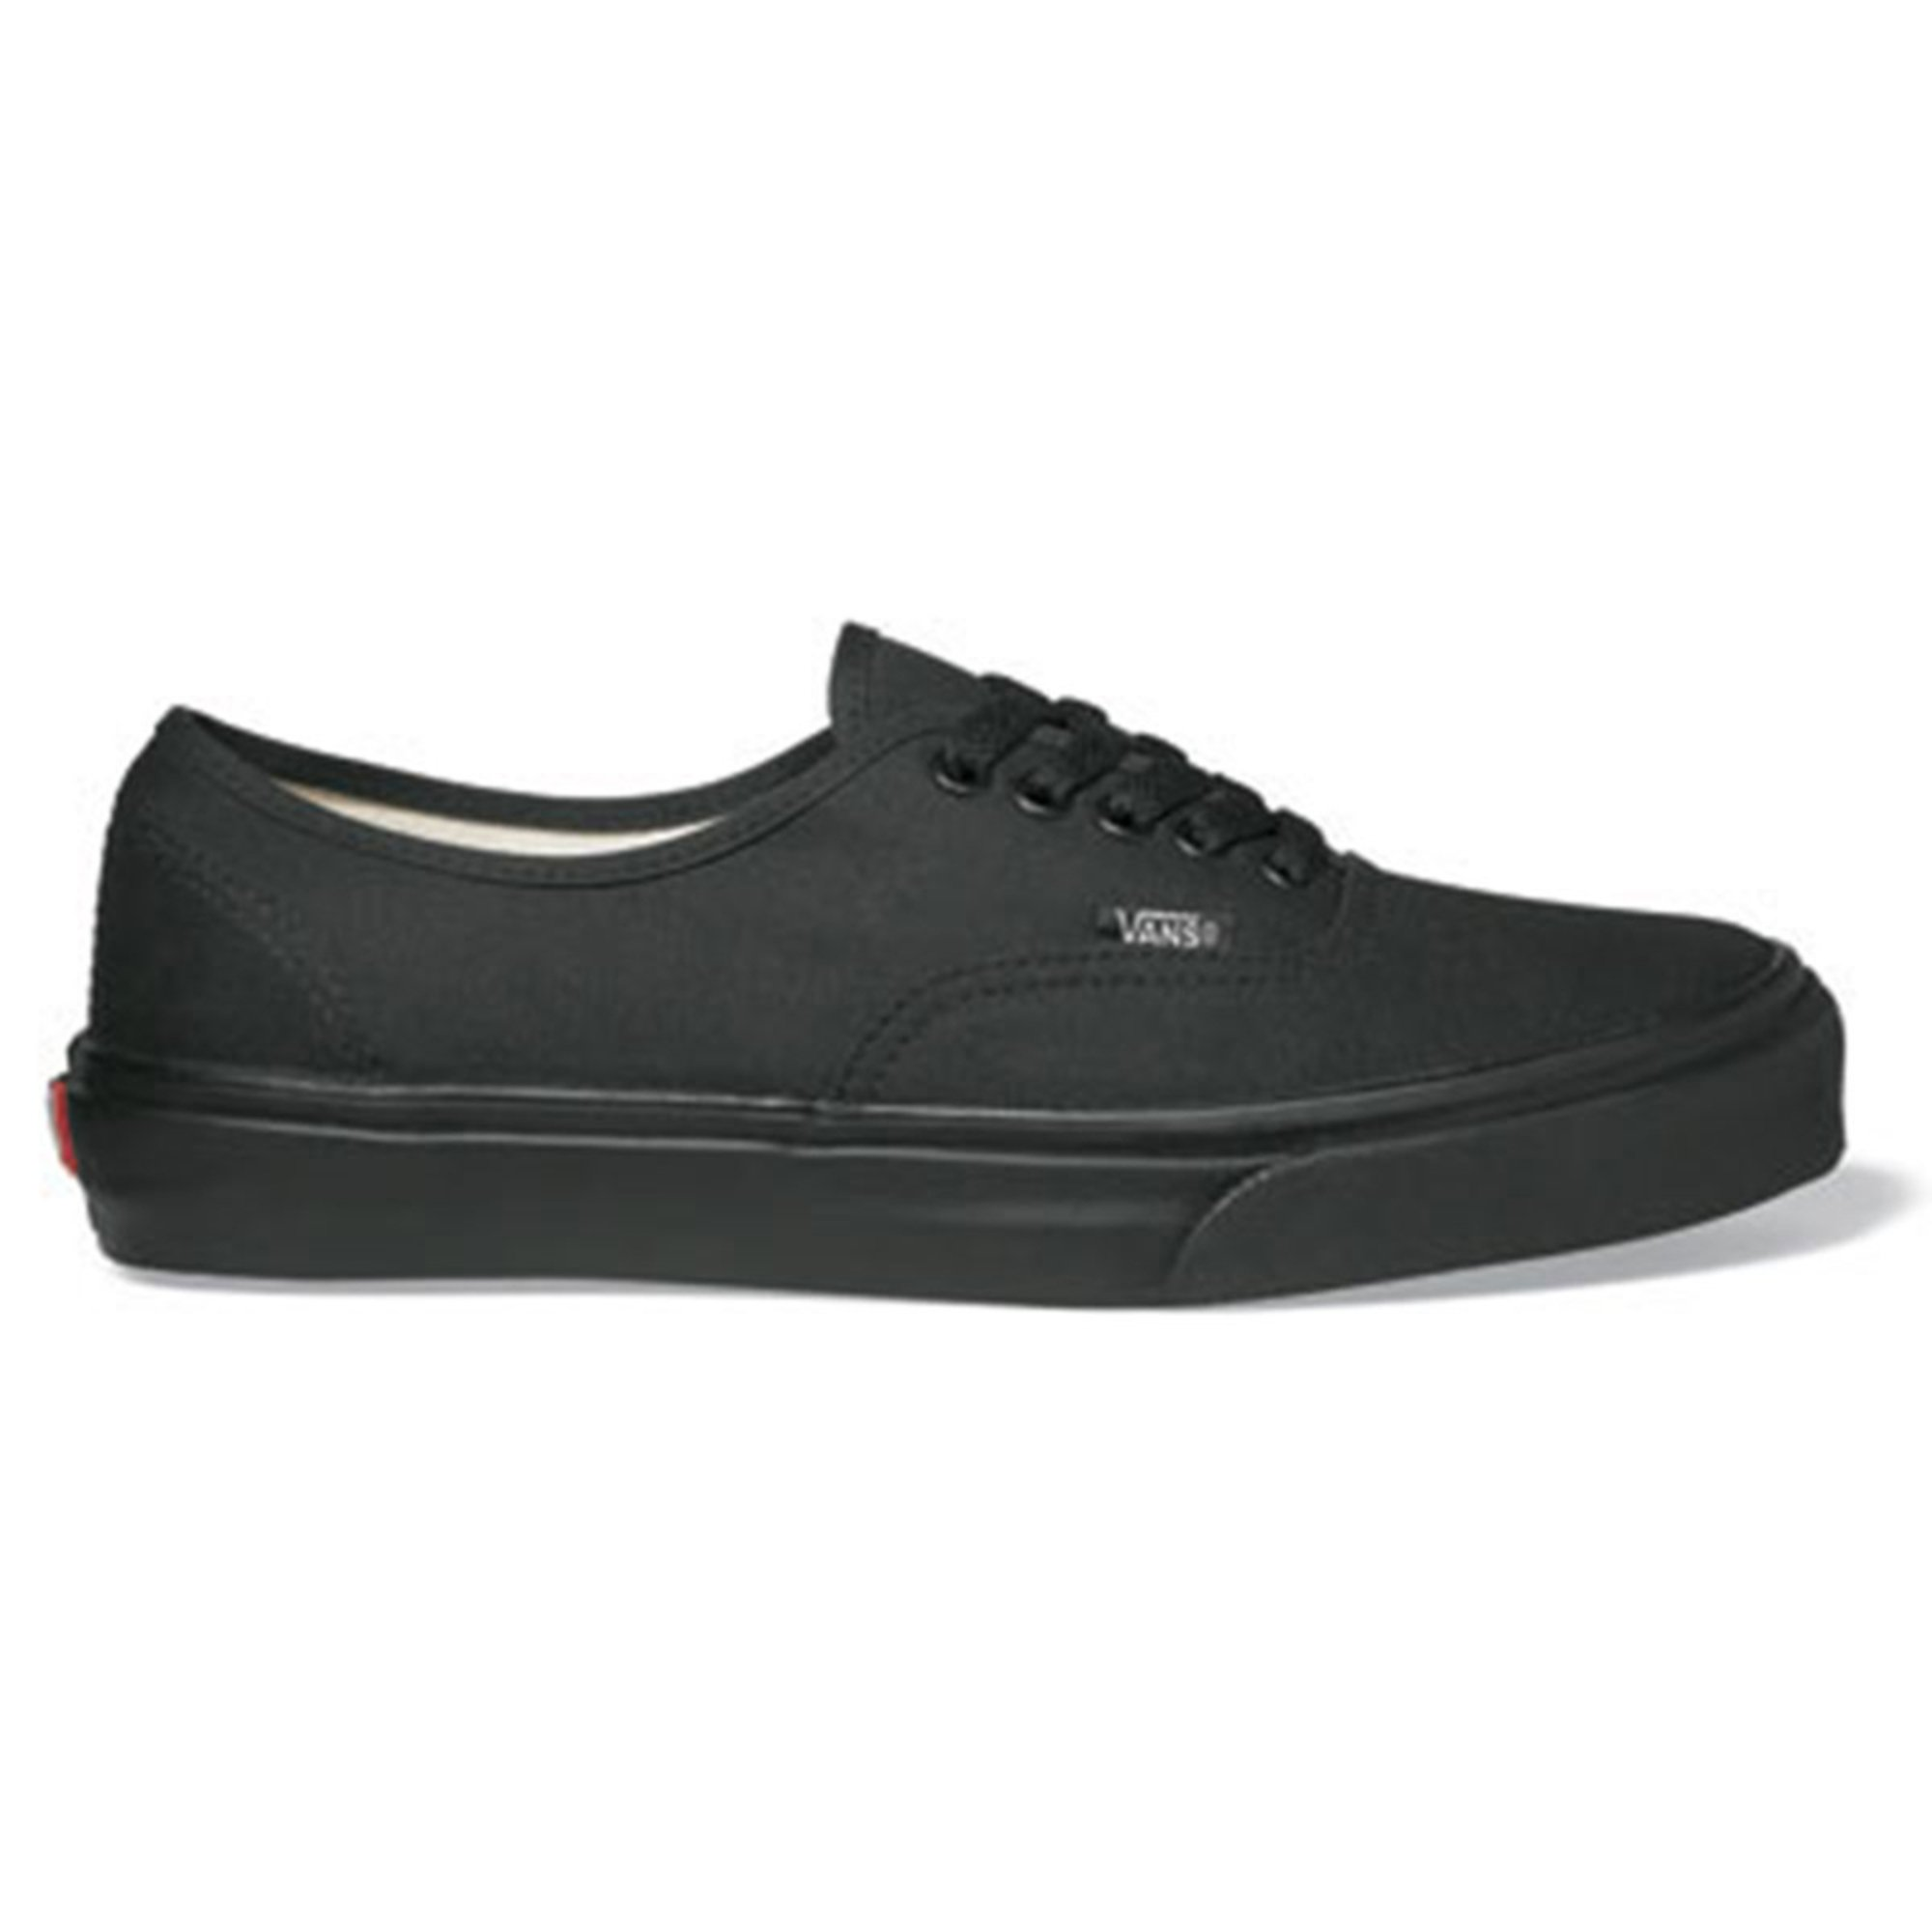 663bc8cf0d058 Vans. Vans Men s Authentic Skate Shoe